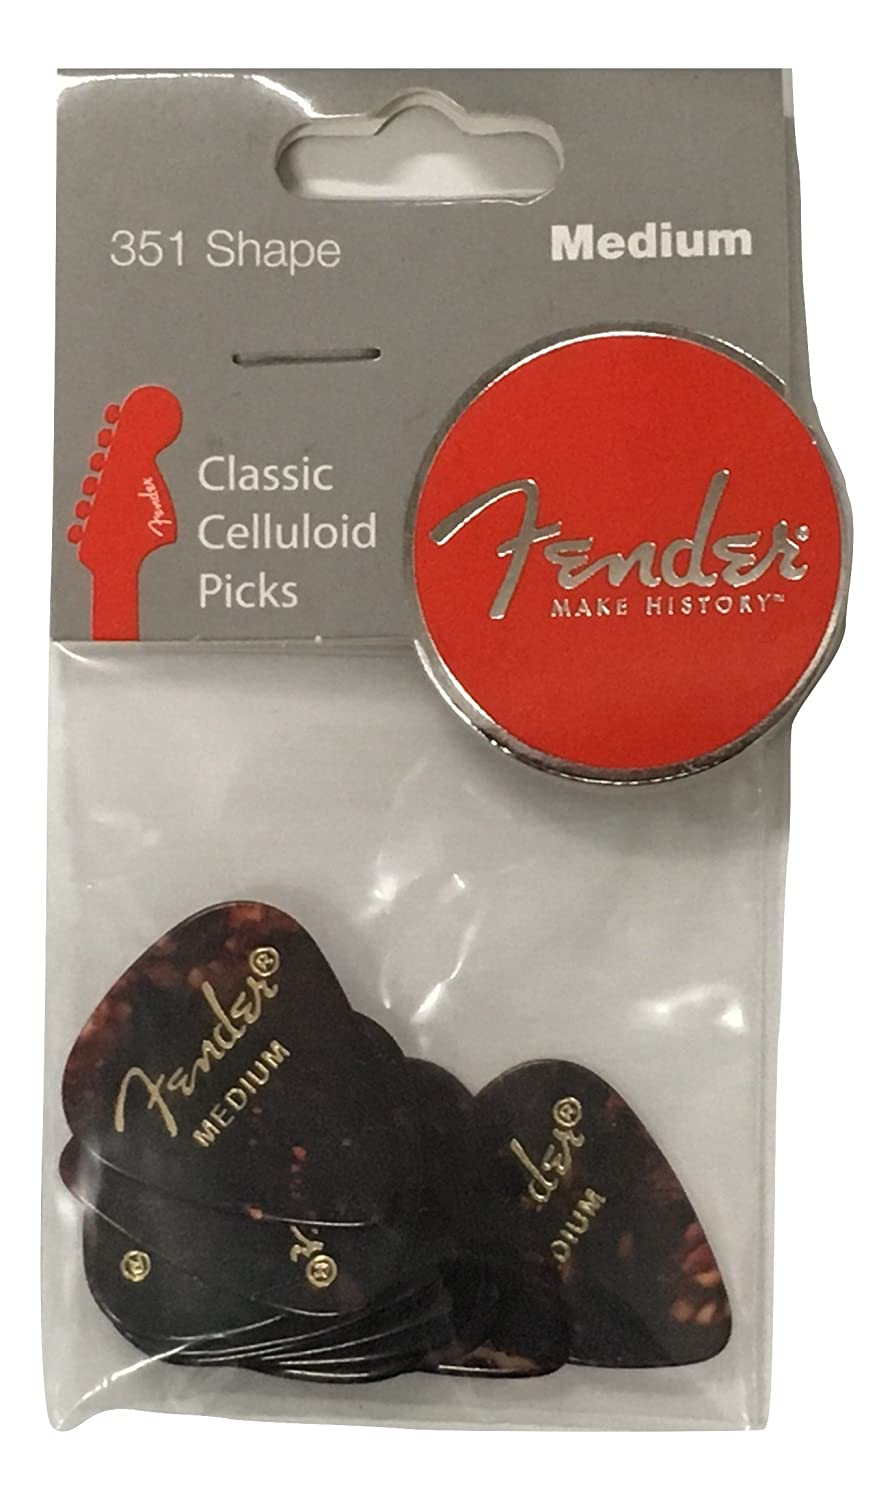 Fender 351 Classic Celluloid Picks (12-Pack) - Shell medium: Amazon.es: Instrumentos musicales